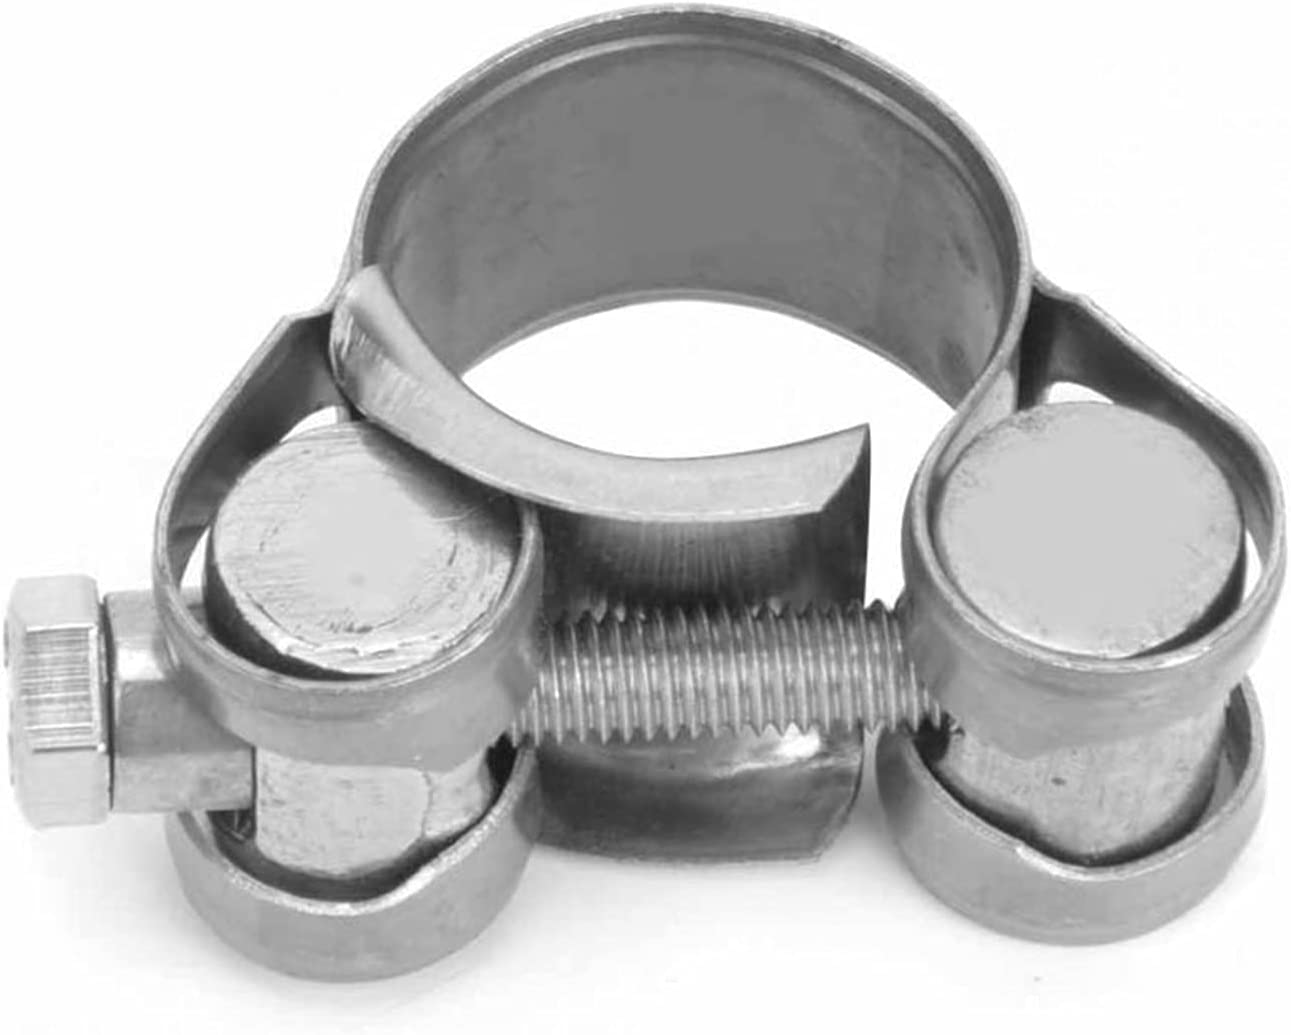 5Pcs Ultra Thin Stainless Steel Clamp Support 2 Clip Ring Super Special SALE held T-Bolt Max 78% OFF